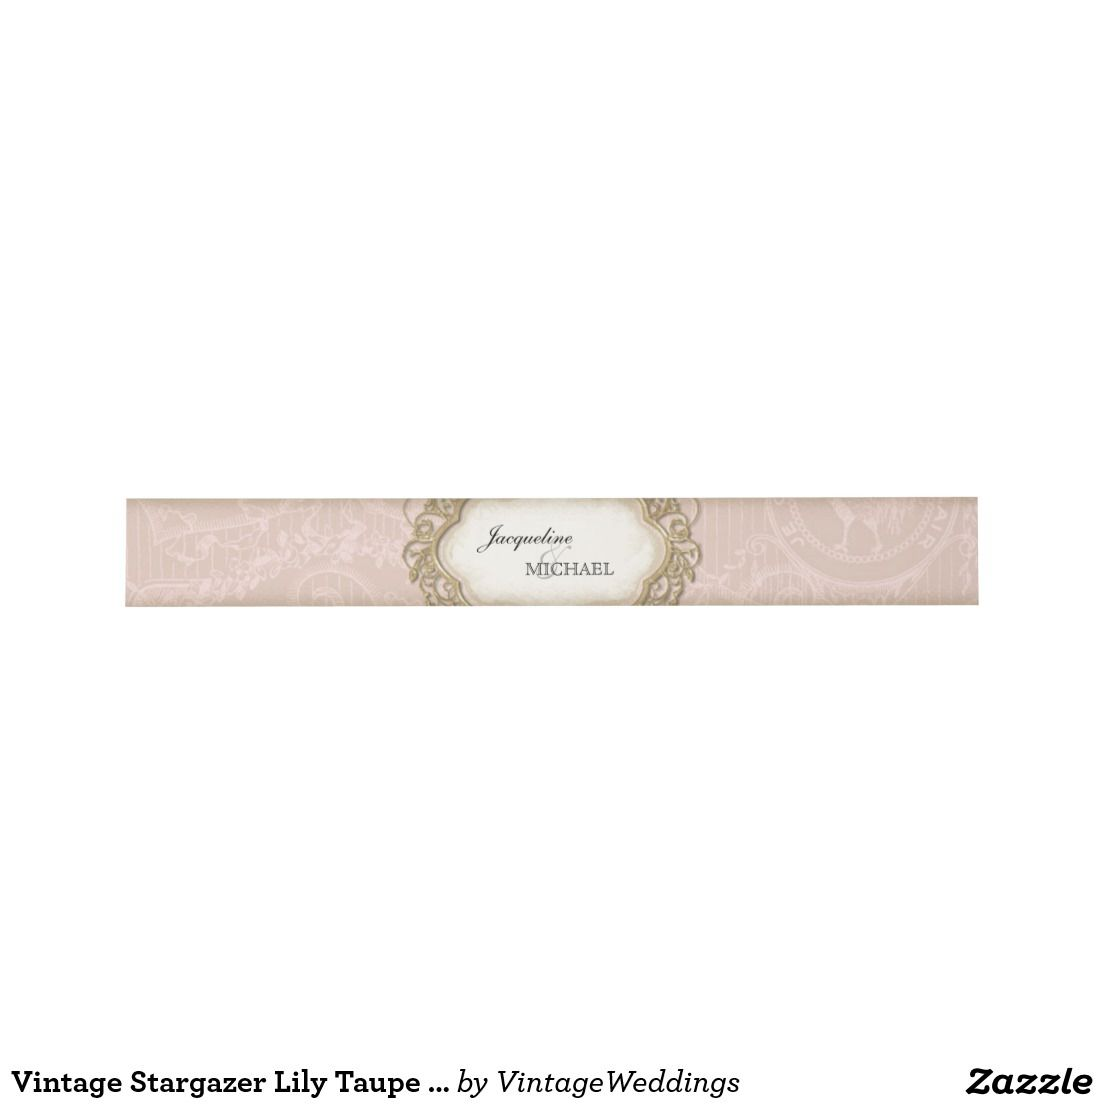 Vintage Stargazer Lily Taupe Lace Gold Frame Invitation Belly Band